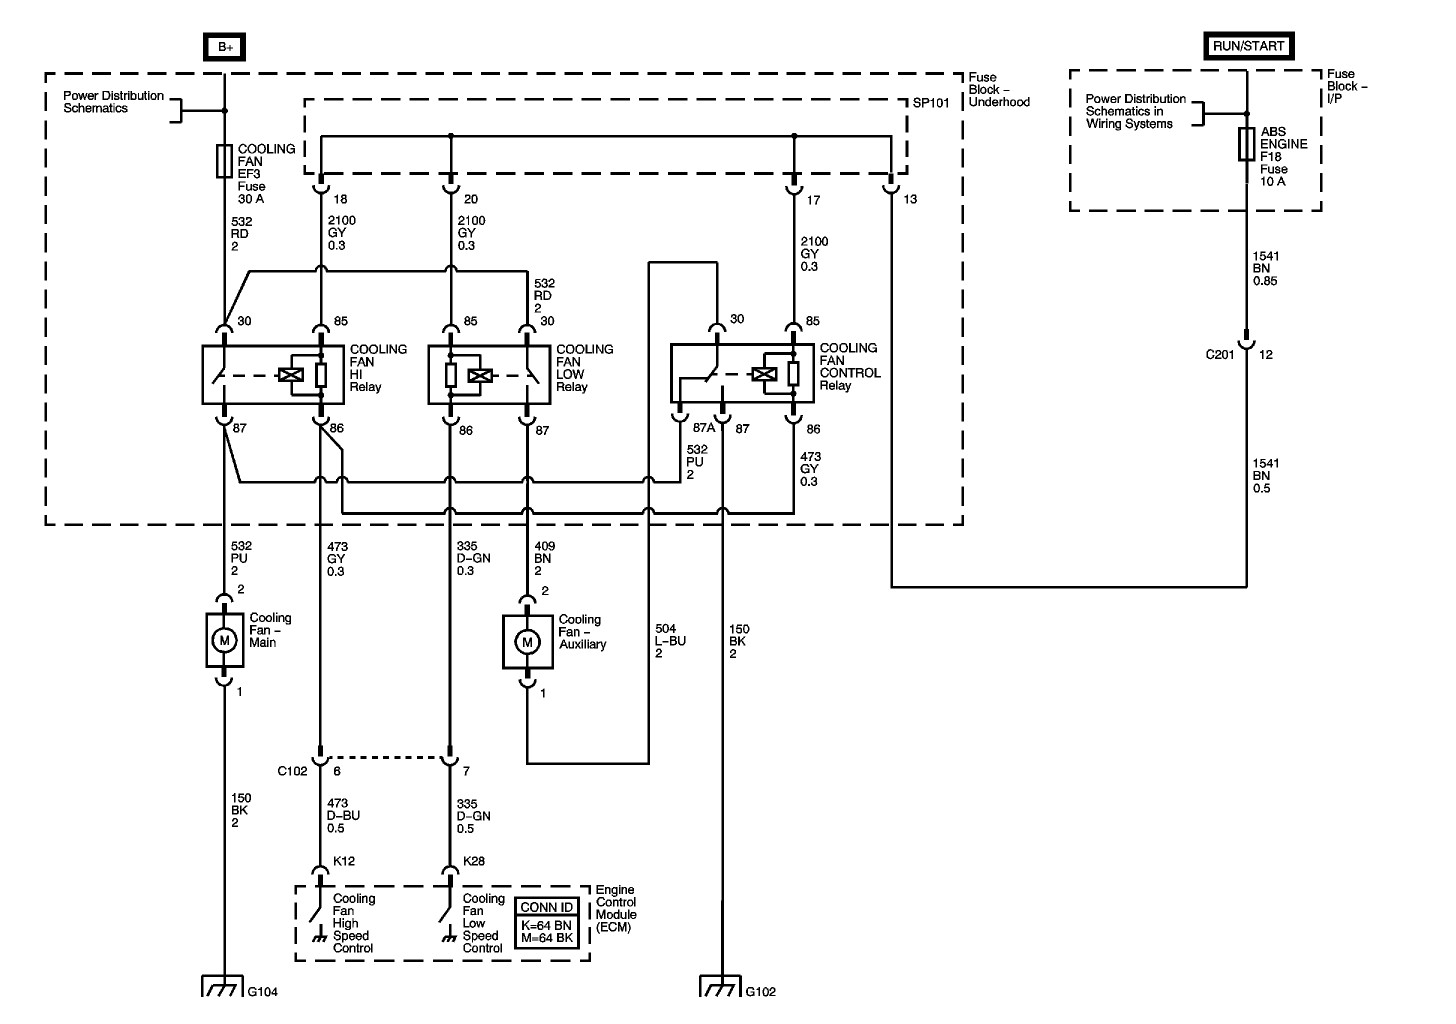 hight resolution of po706 code 2004 chevy aveo engine diagram wiring diagram row 2008 chevy aveo engine diagram